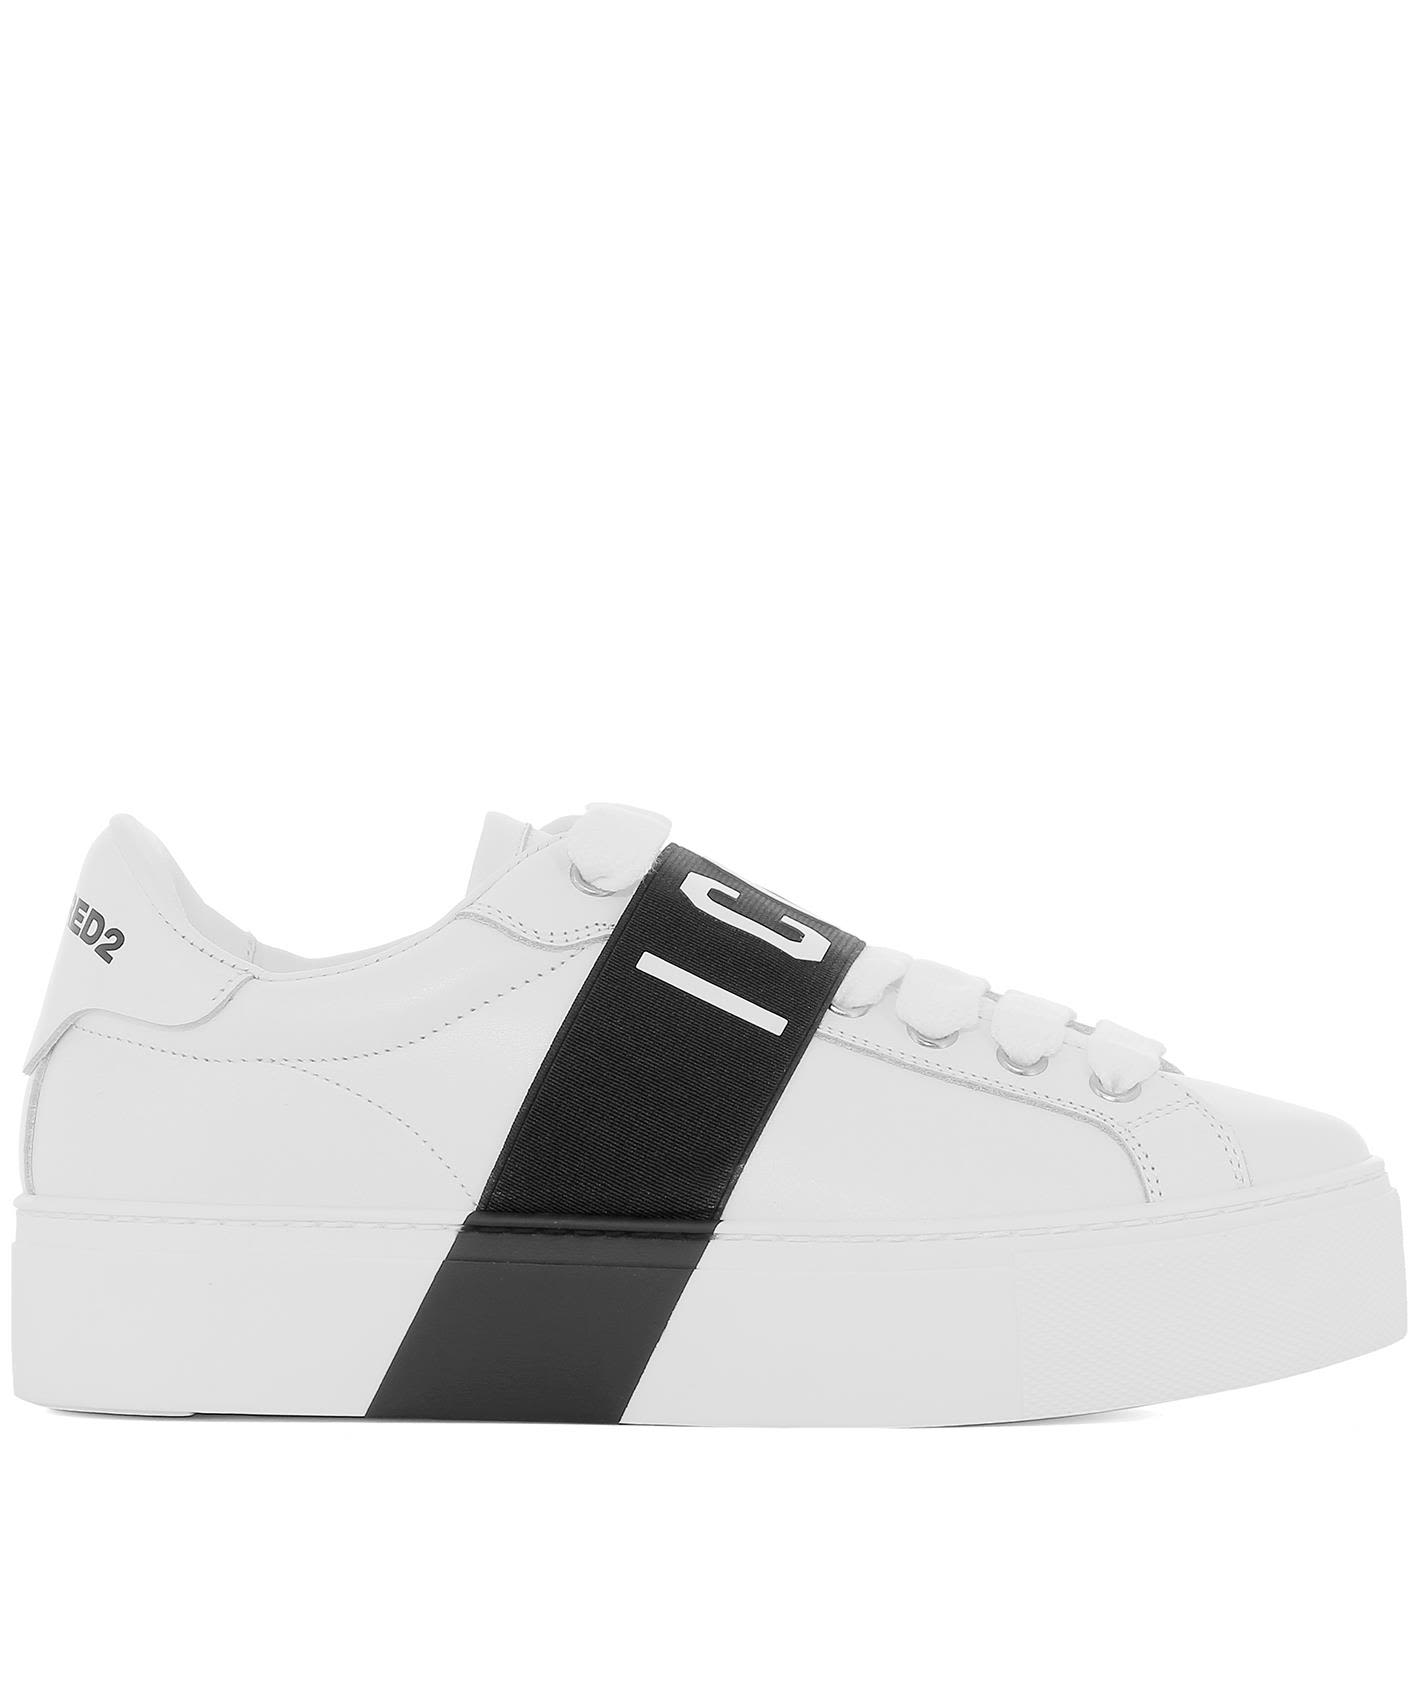 Icon sneakers - White Dsquared2 iW9q16